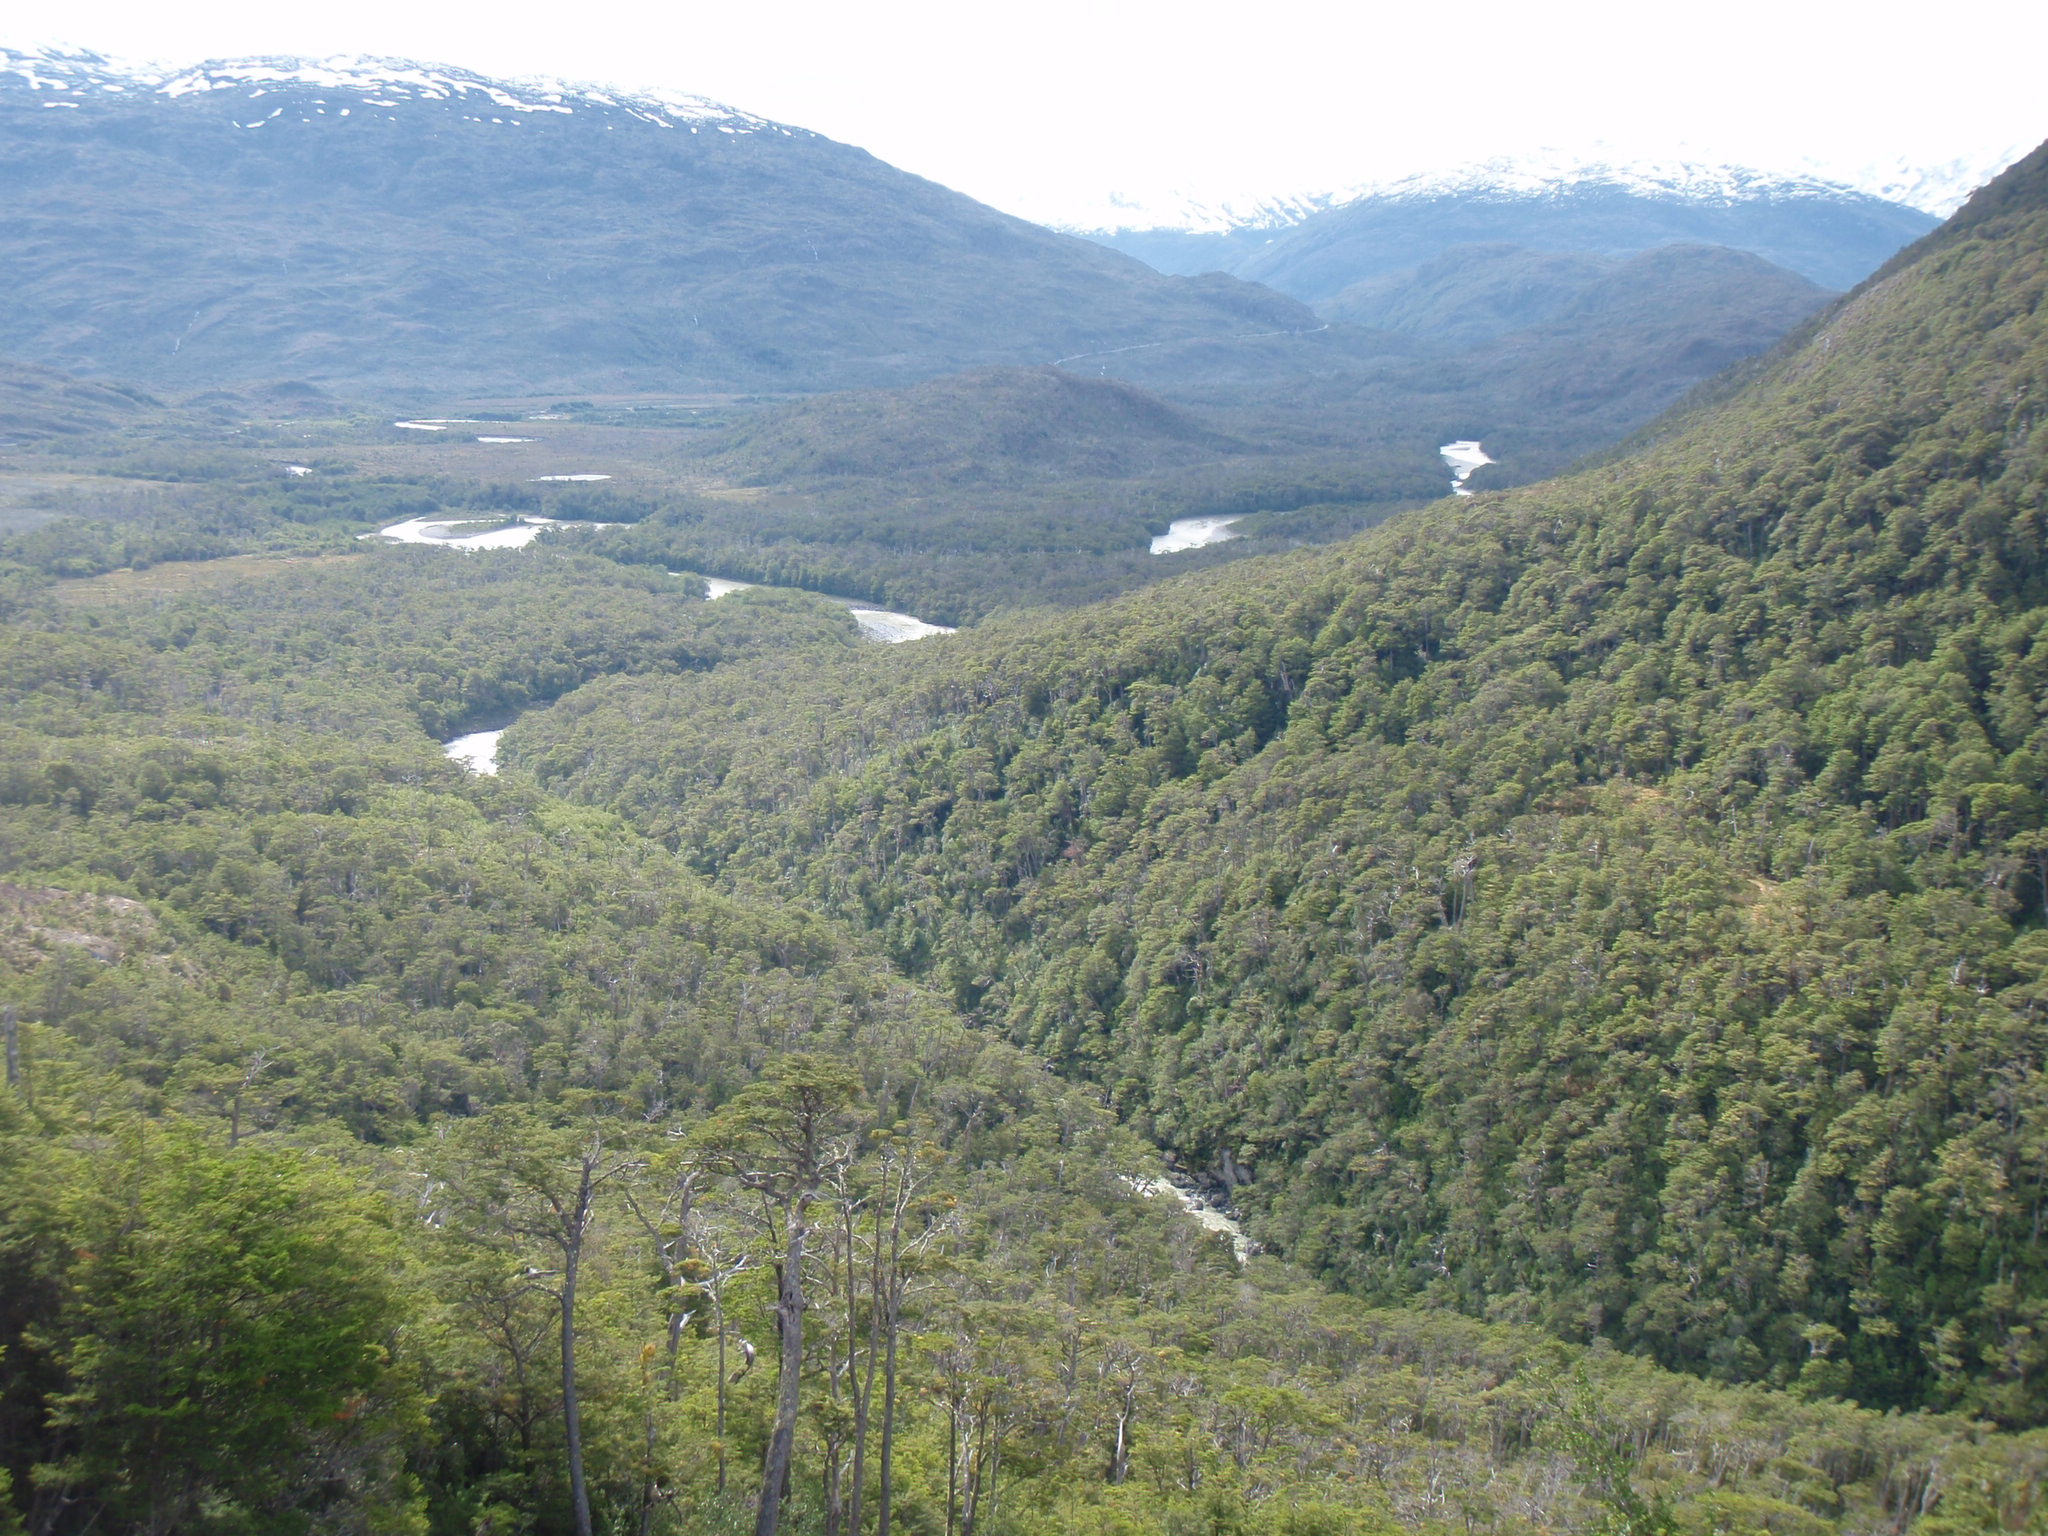 Stunning views of rainforest and rivers from the Carreterra Austral near Puerto Yungas